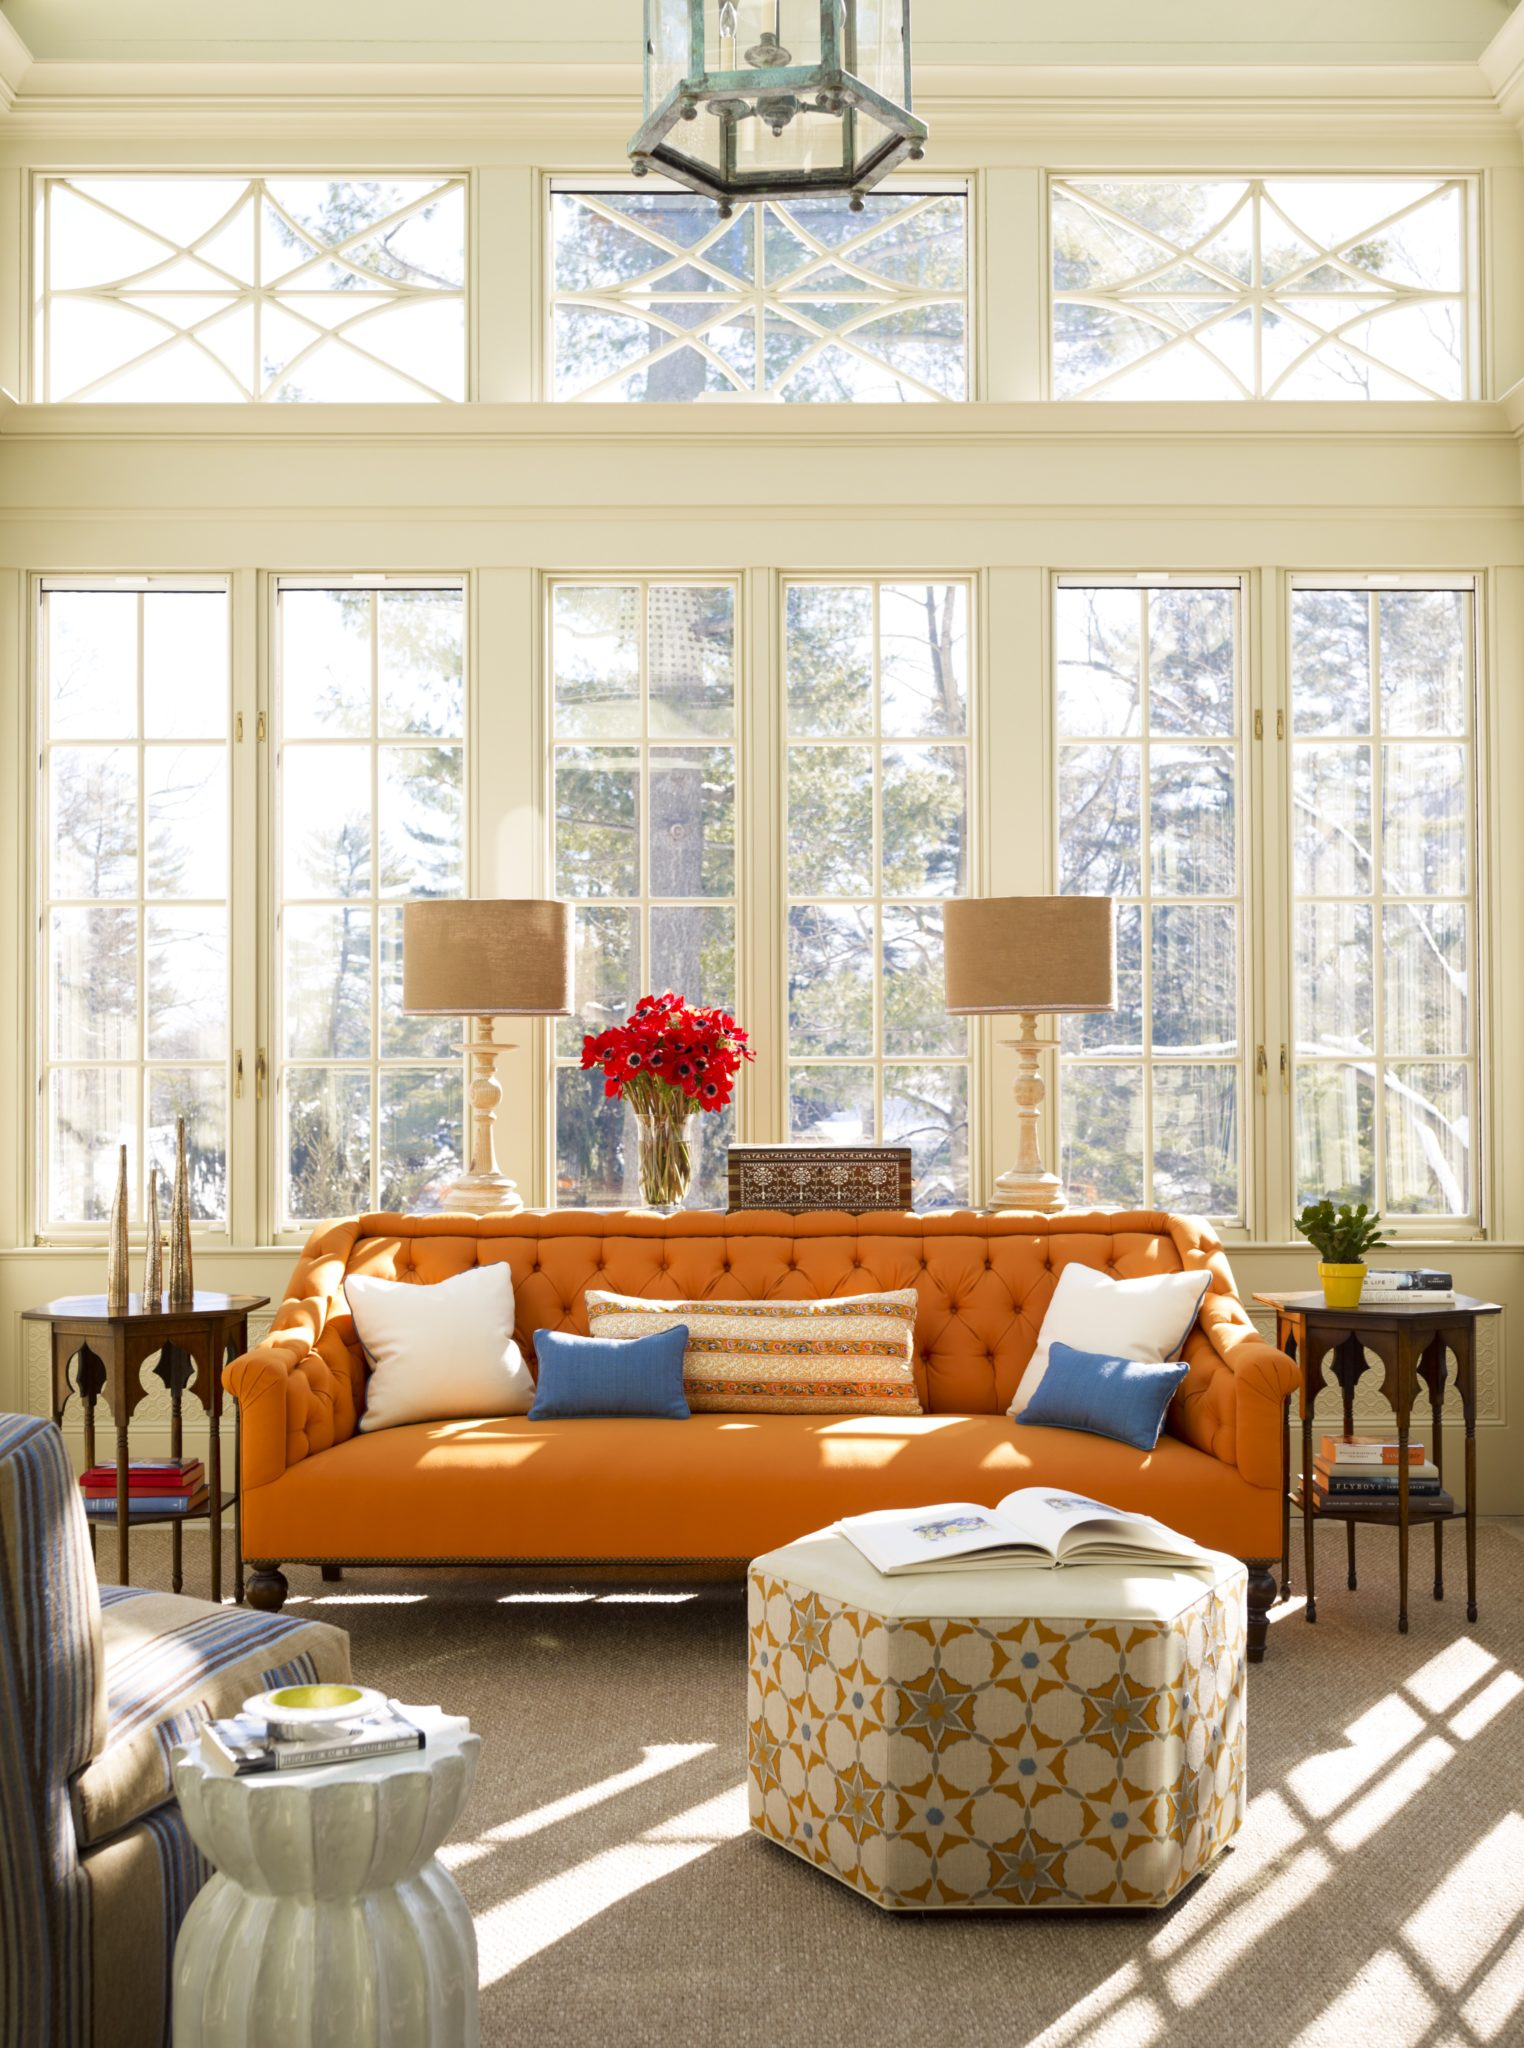 Sunroom with Moroccan-inspired furniture by Katie Ridder Inc.